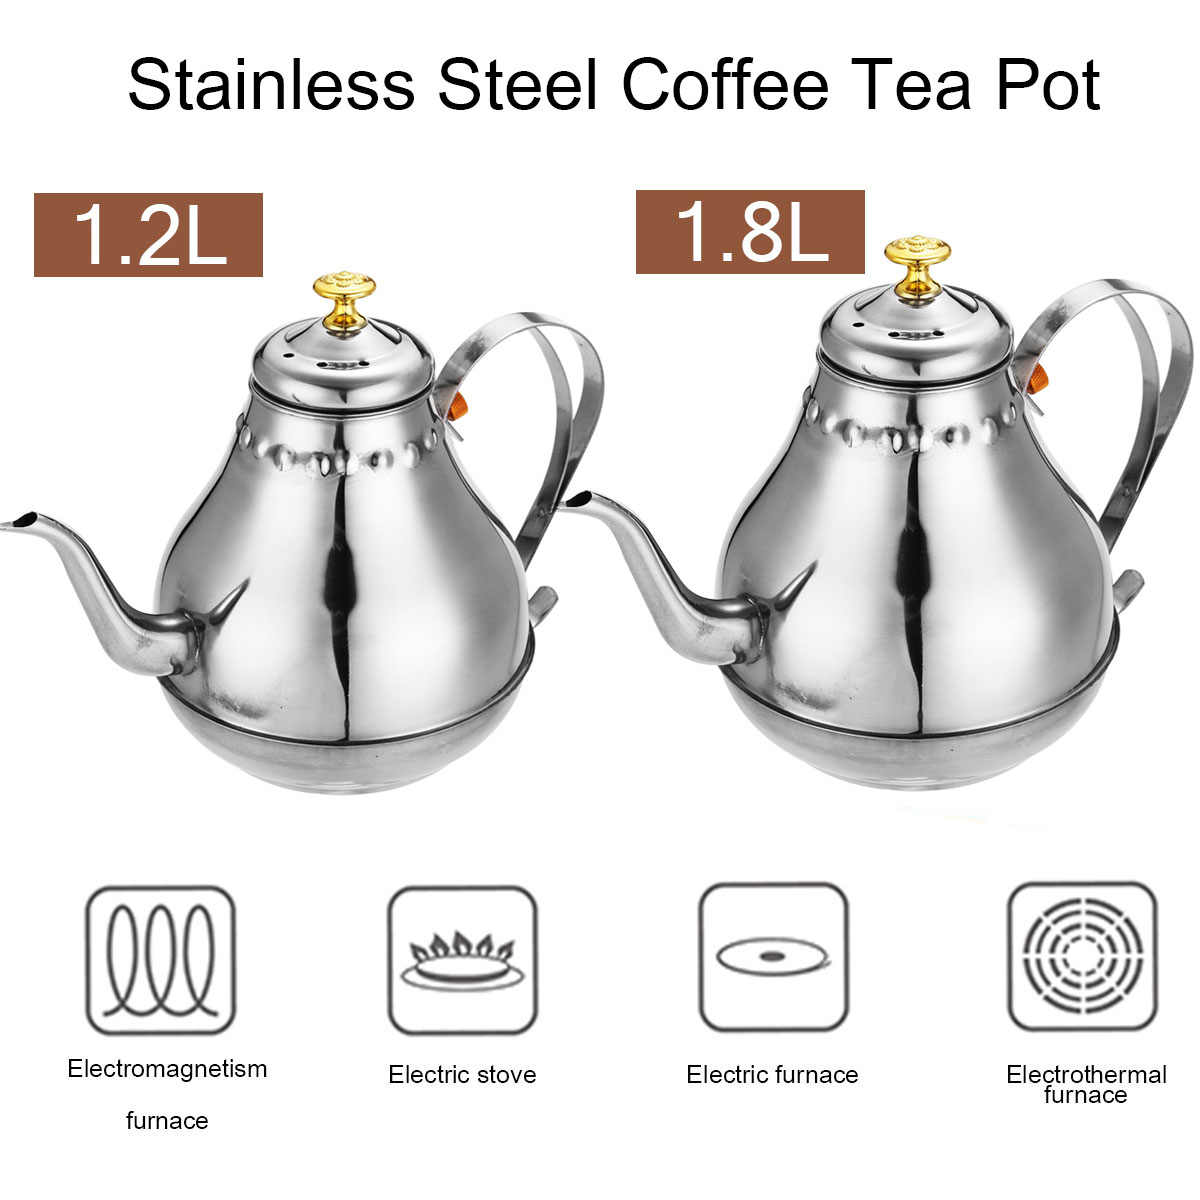 1.2/1.8L Coffee Pot Stainless Steel Water Kettle for Tea/Milk/Flower Teapot with Filter suit for Electric Stove/Gas Stove Gift